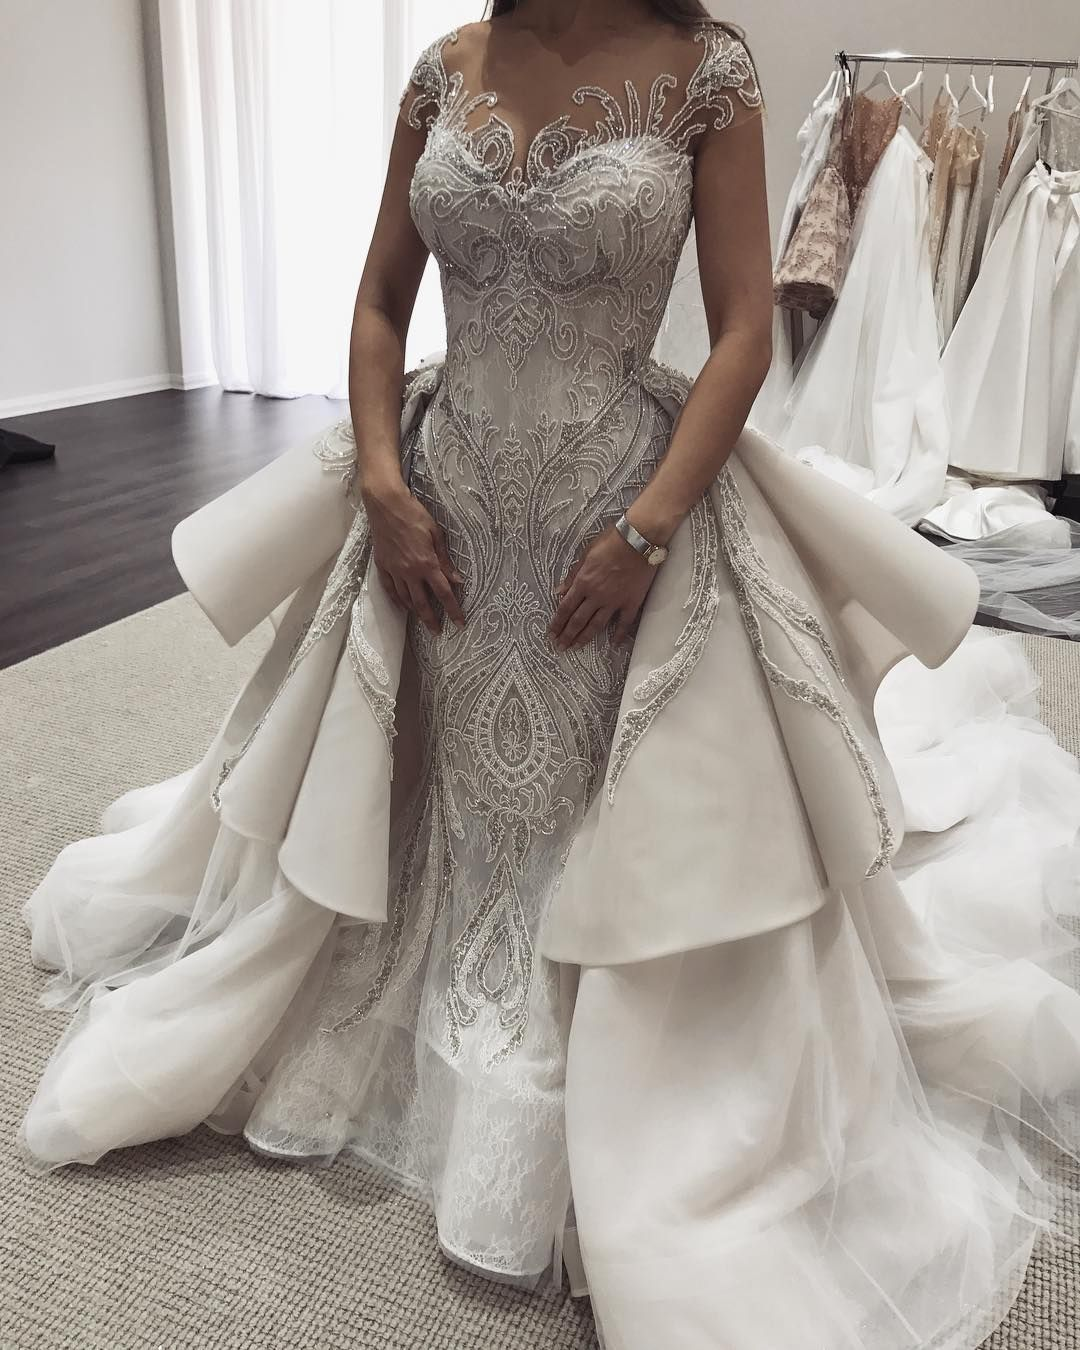 Affordable Custom Wedding Dresses Inspired by Haute Couture designs ...